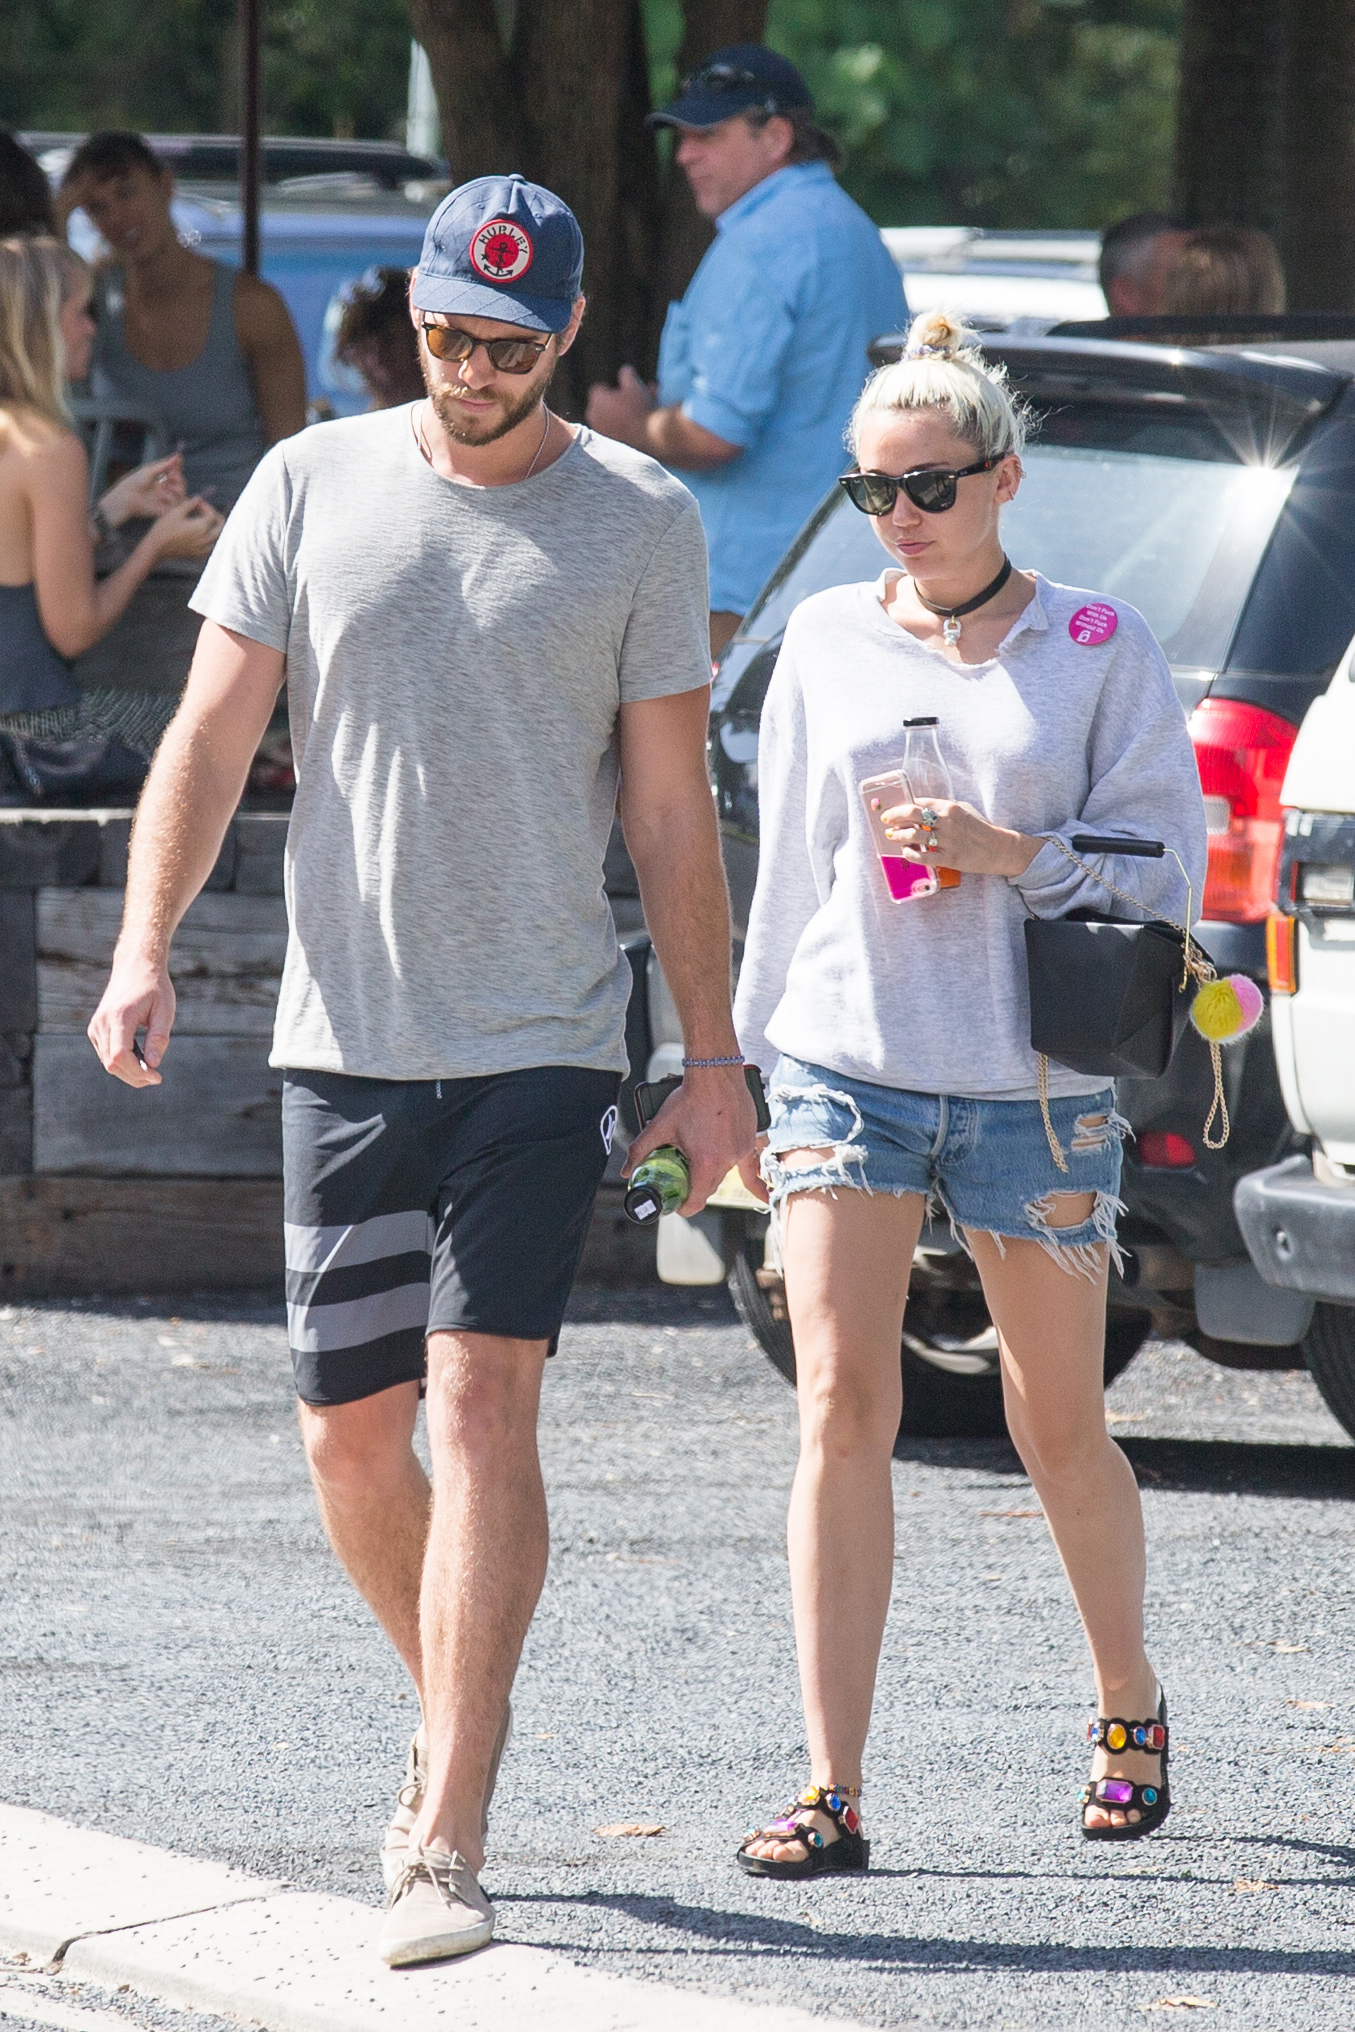 Miley Cyrus has mostly given up partying for Liam Hemsworth